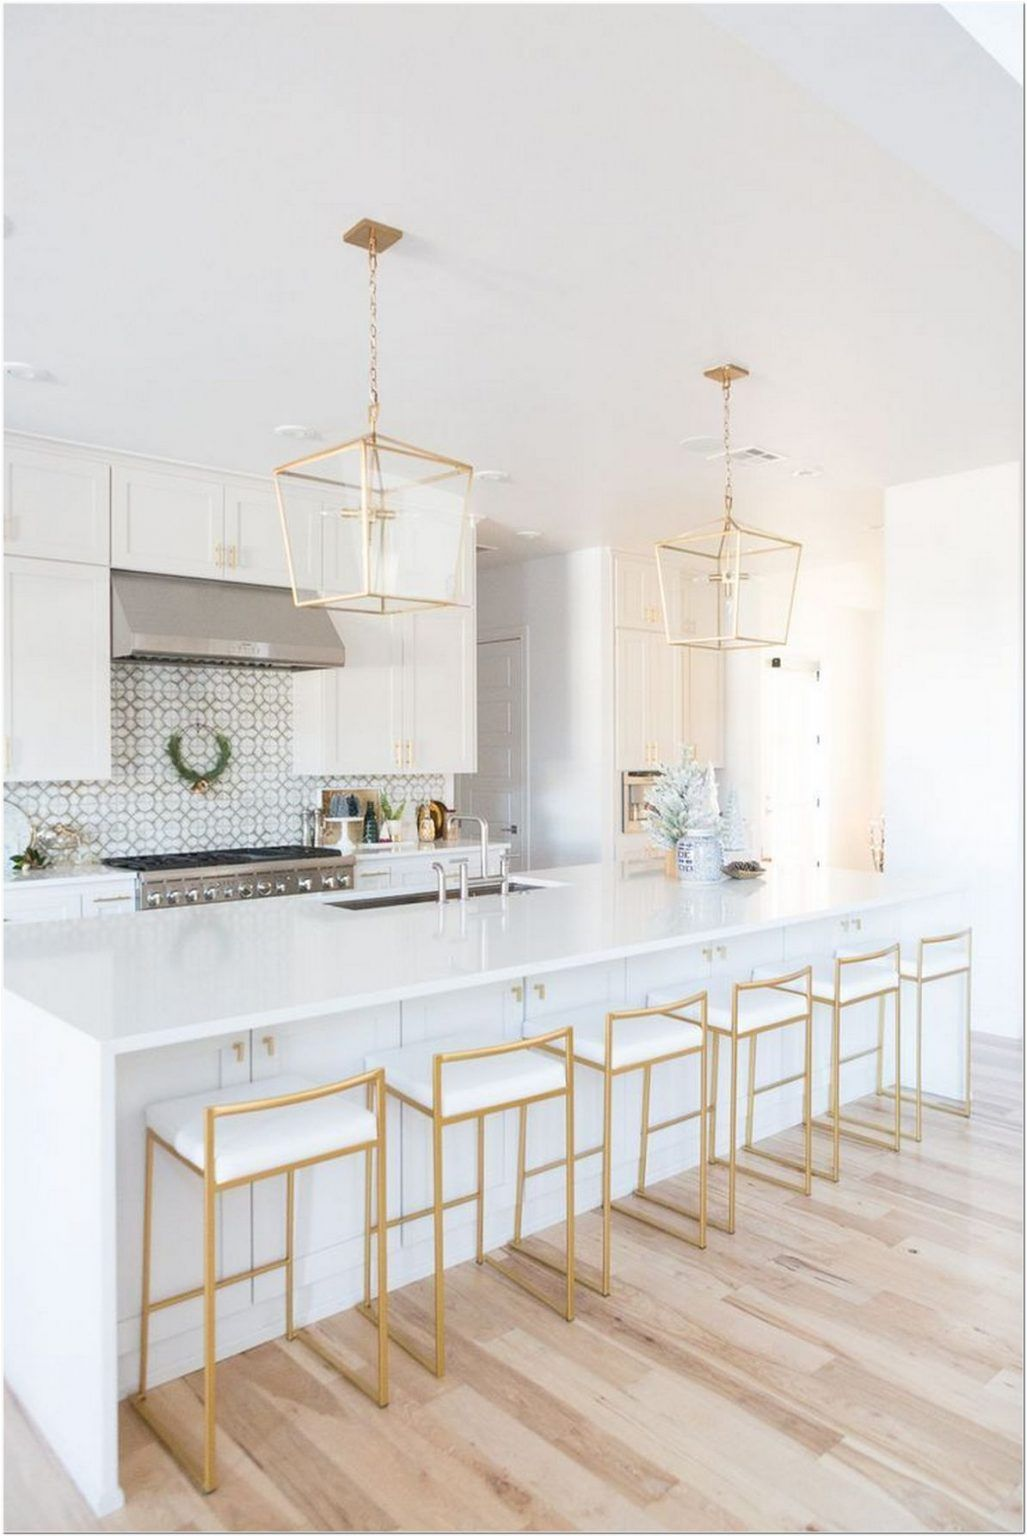 96+ White Kitchen Designs Not Quite What You're Looking For Try These Alternative Designs 1 - findmynewhomes